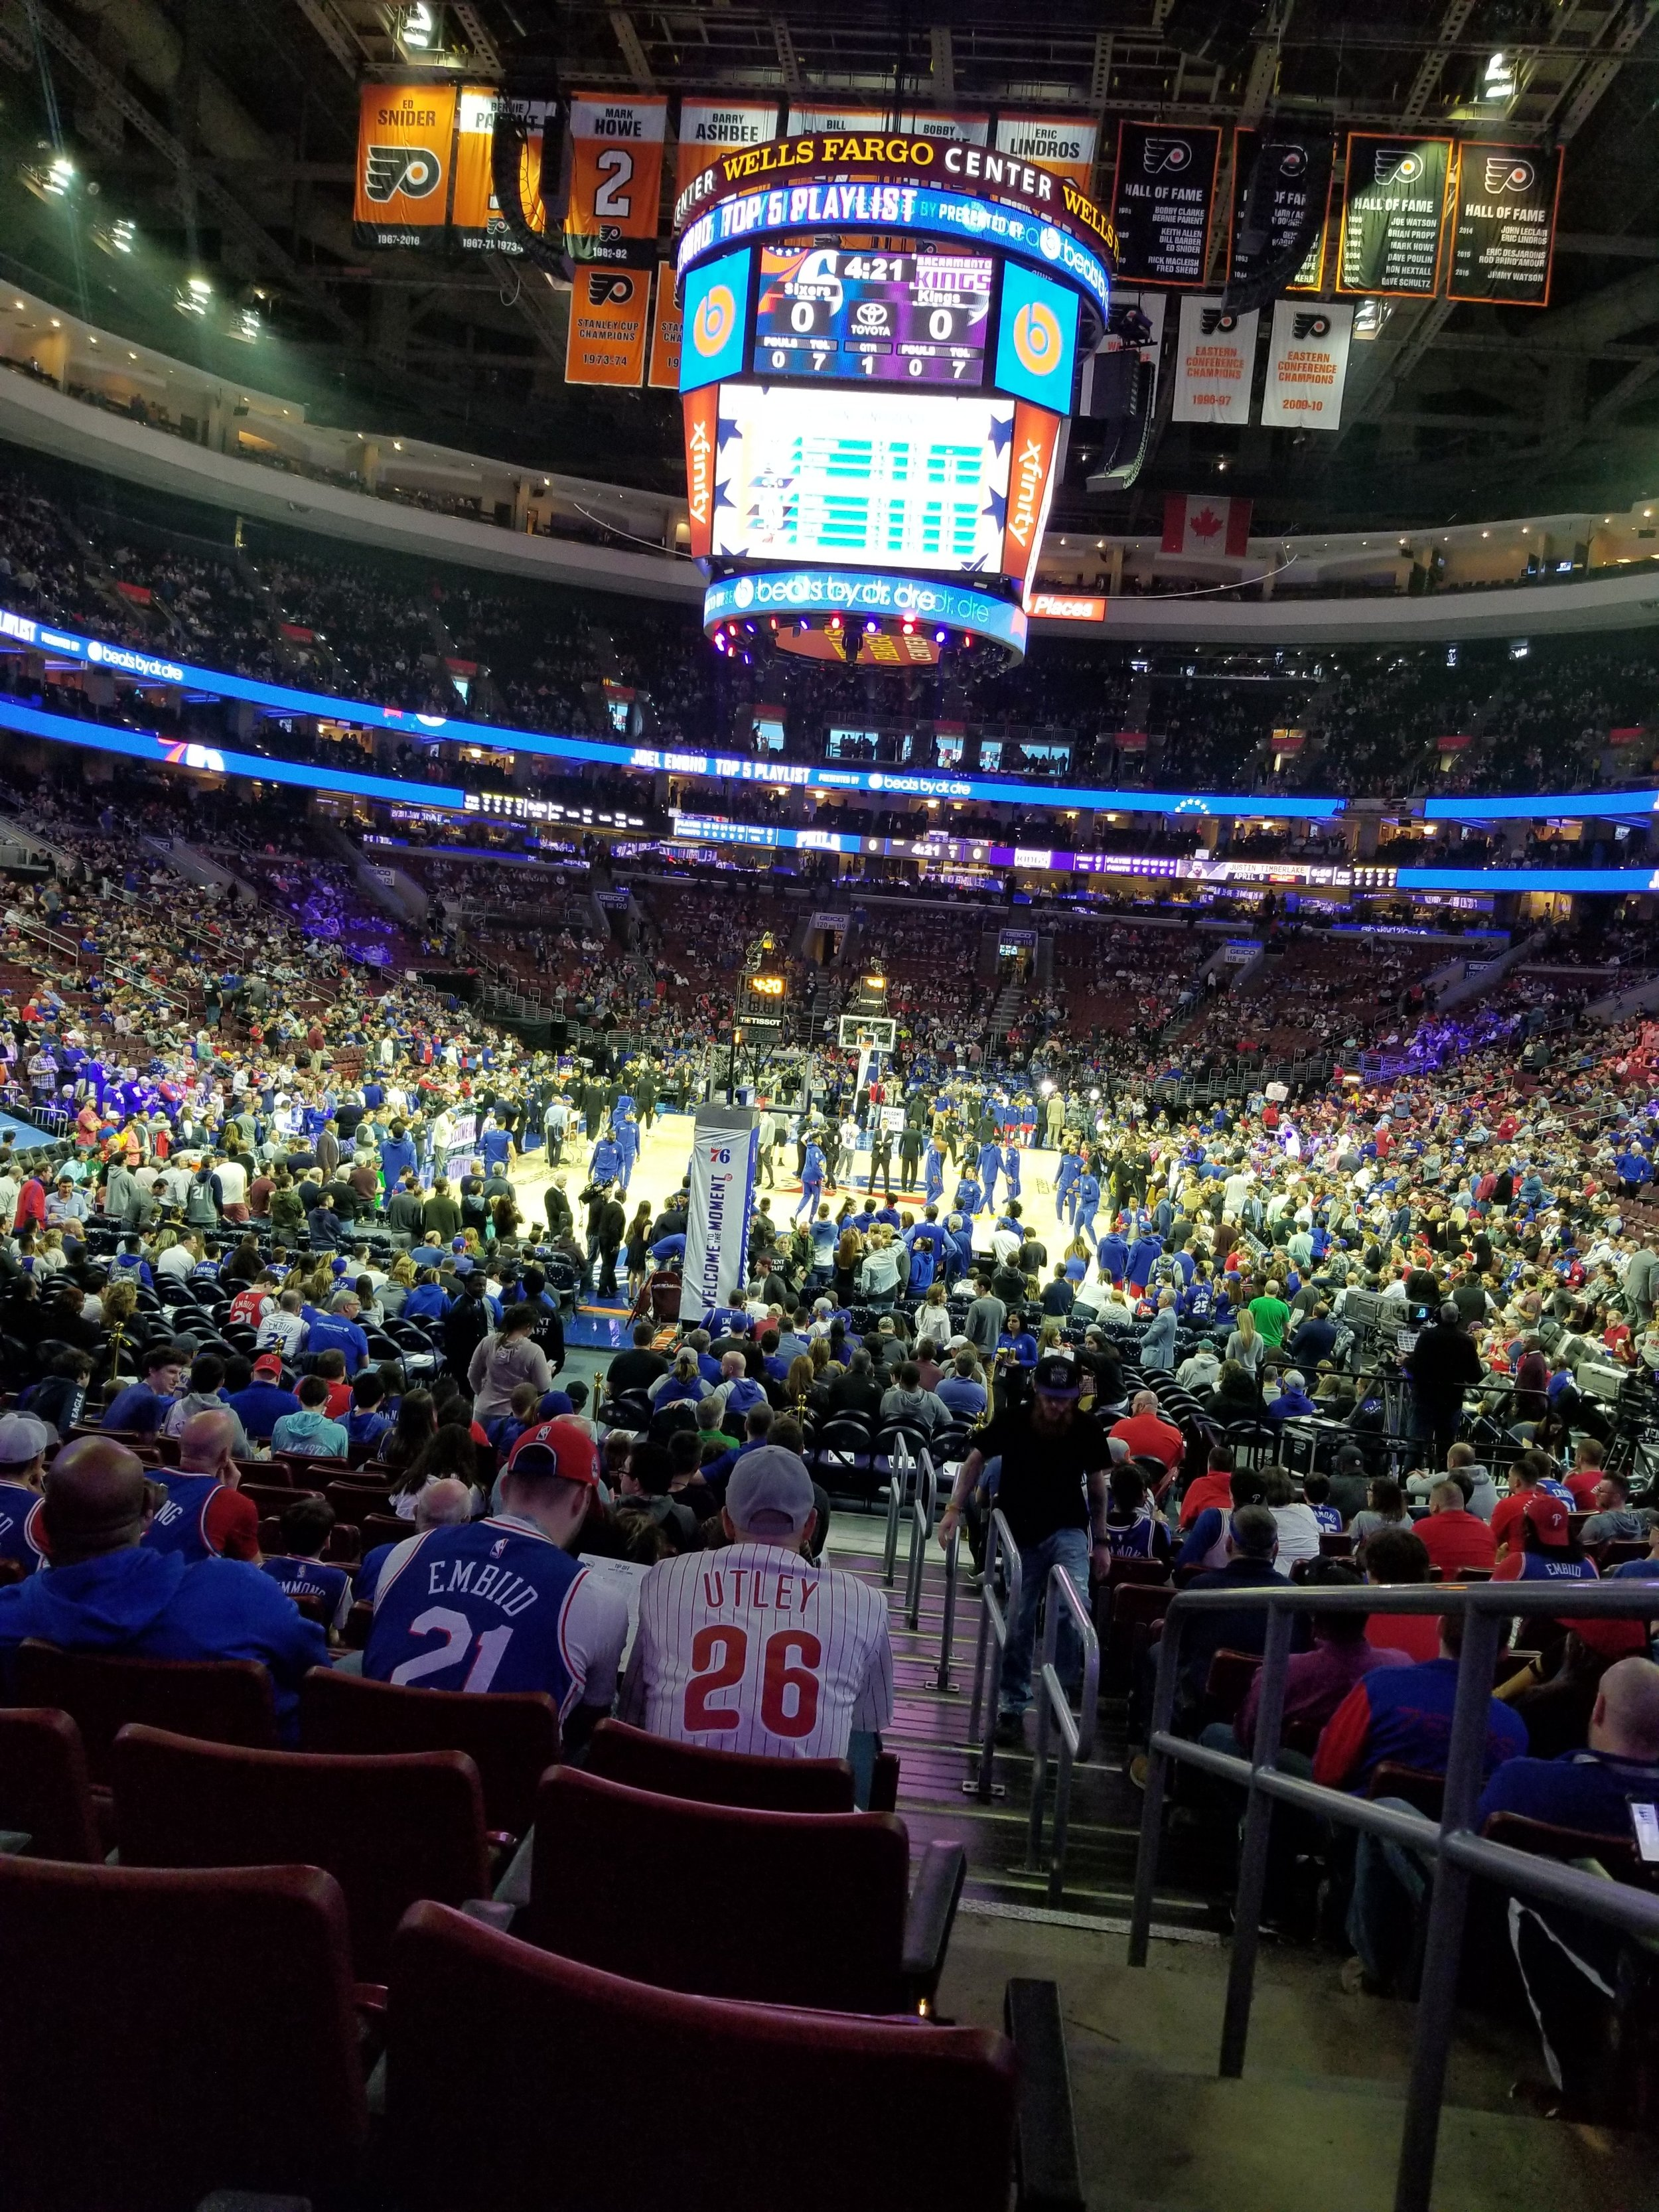 I'm not a basketball fan, but since we didn't have anything plannedwe decided to go to the 76ers home game against the Kings. These great seats were only $125 each.